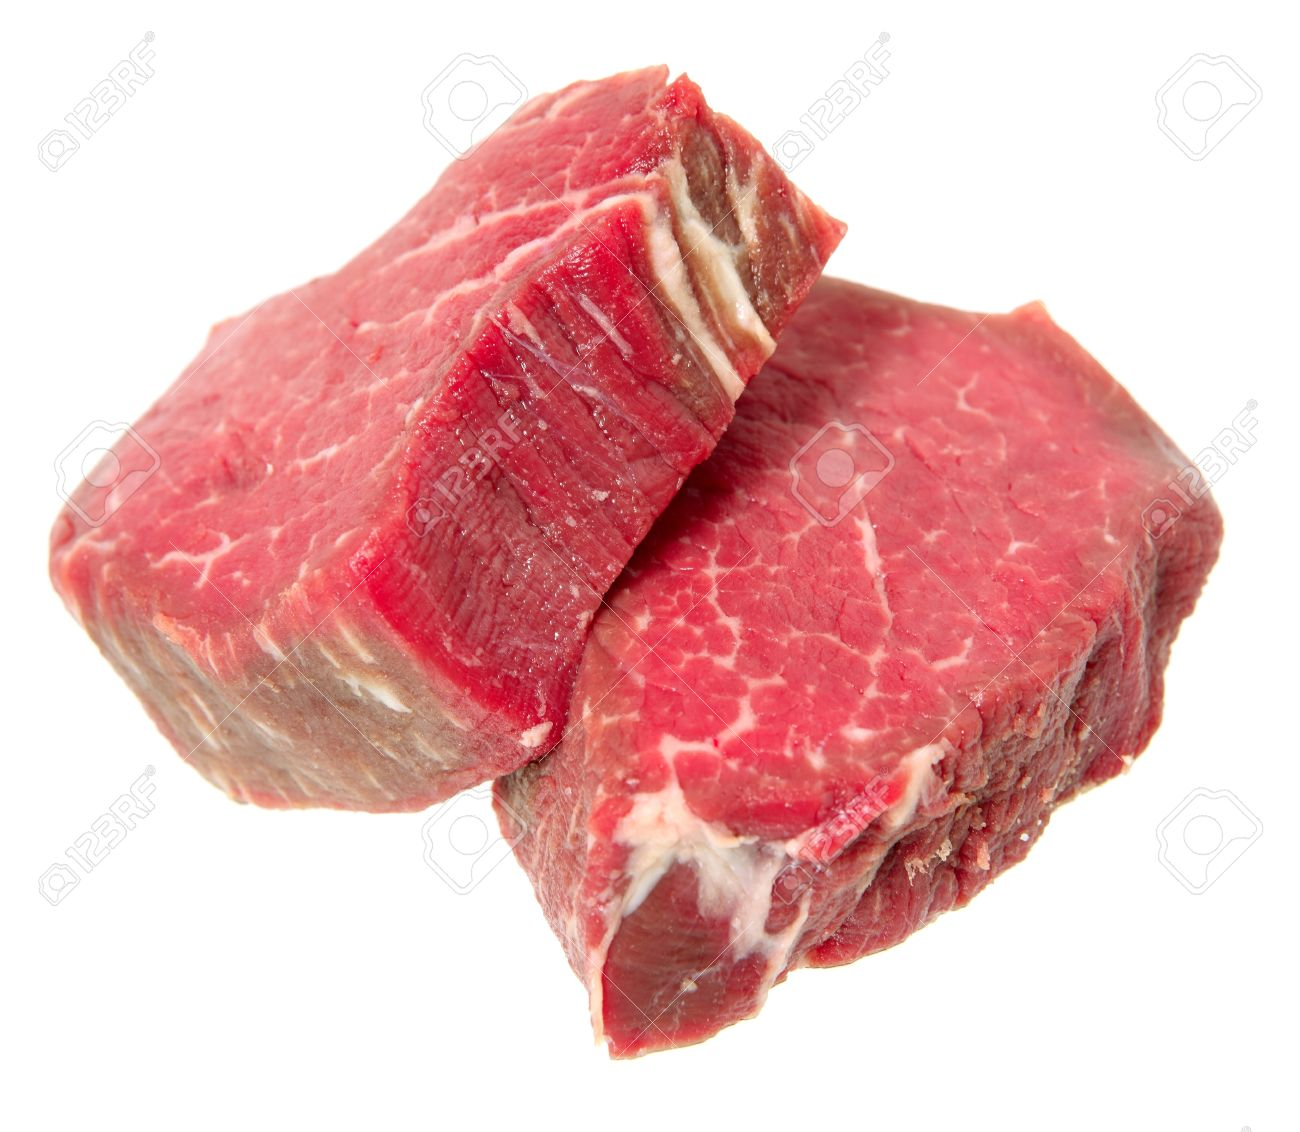 two filet mignon steaks cut from beef tenderloin isolated on